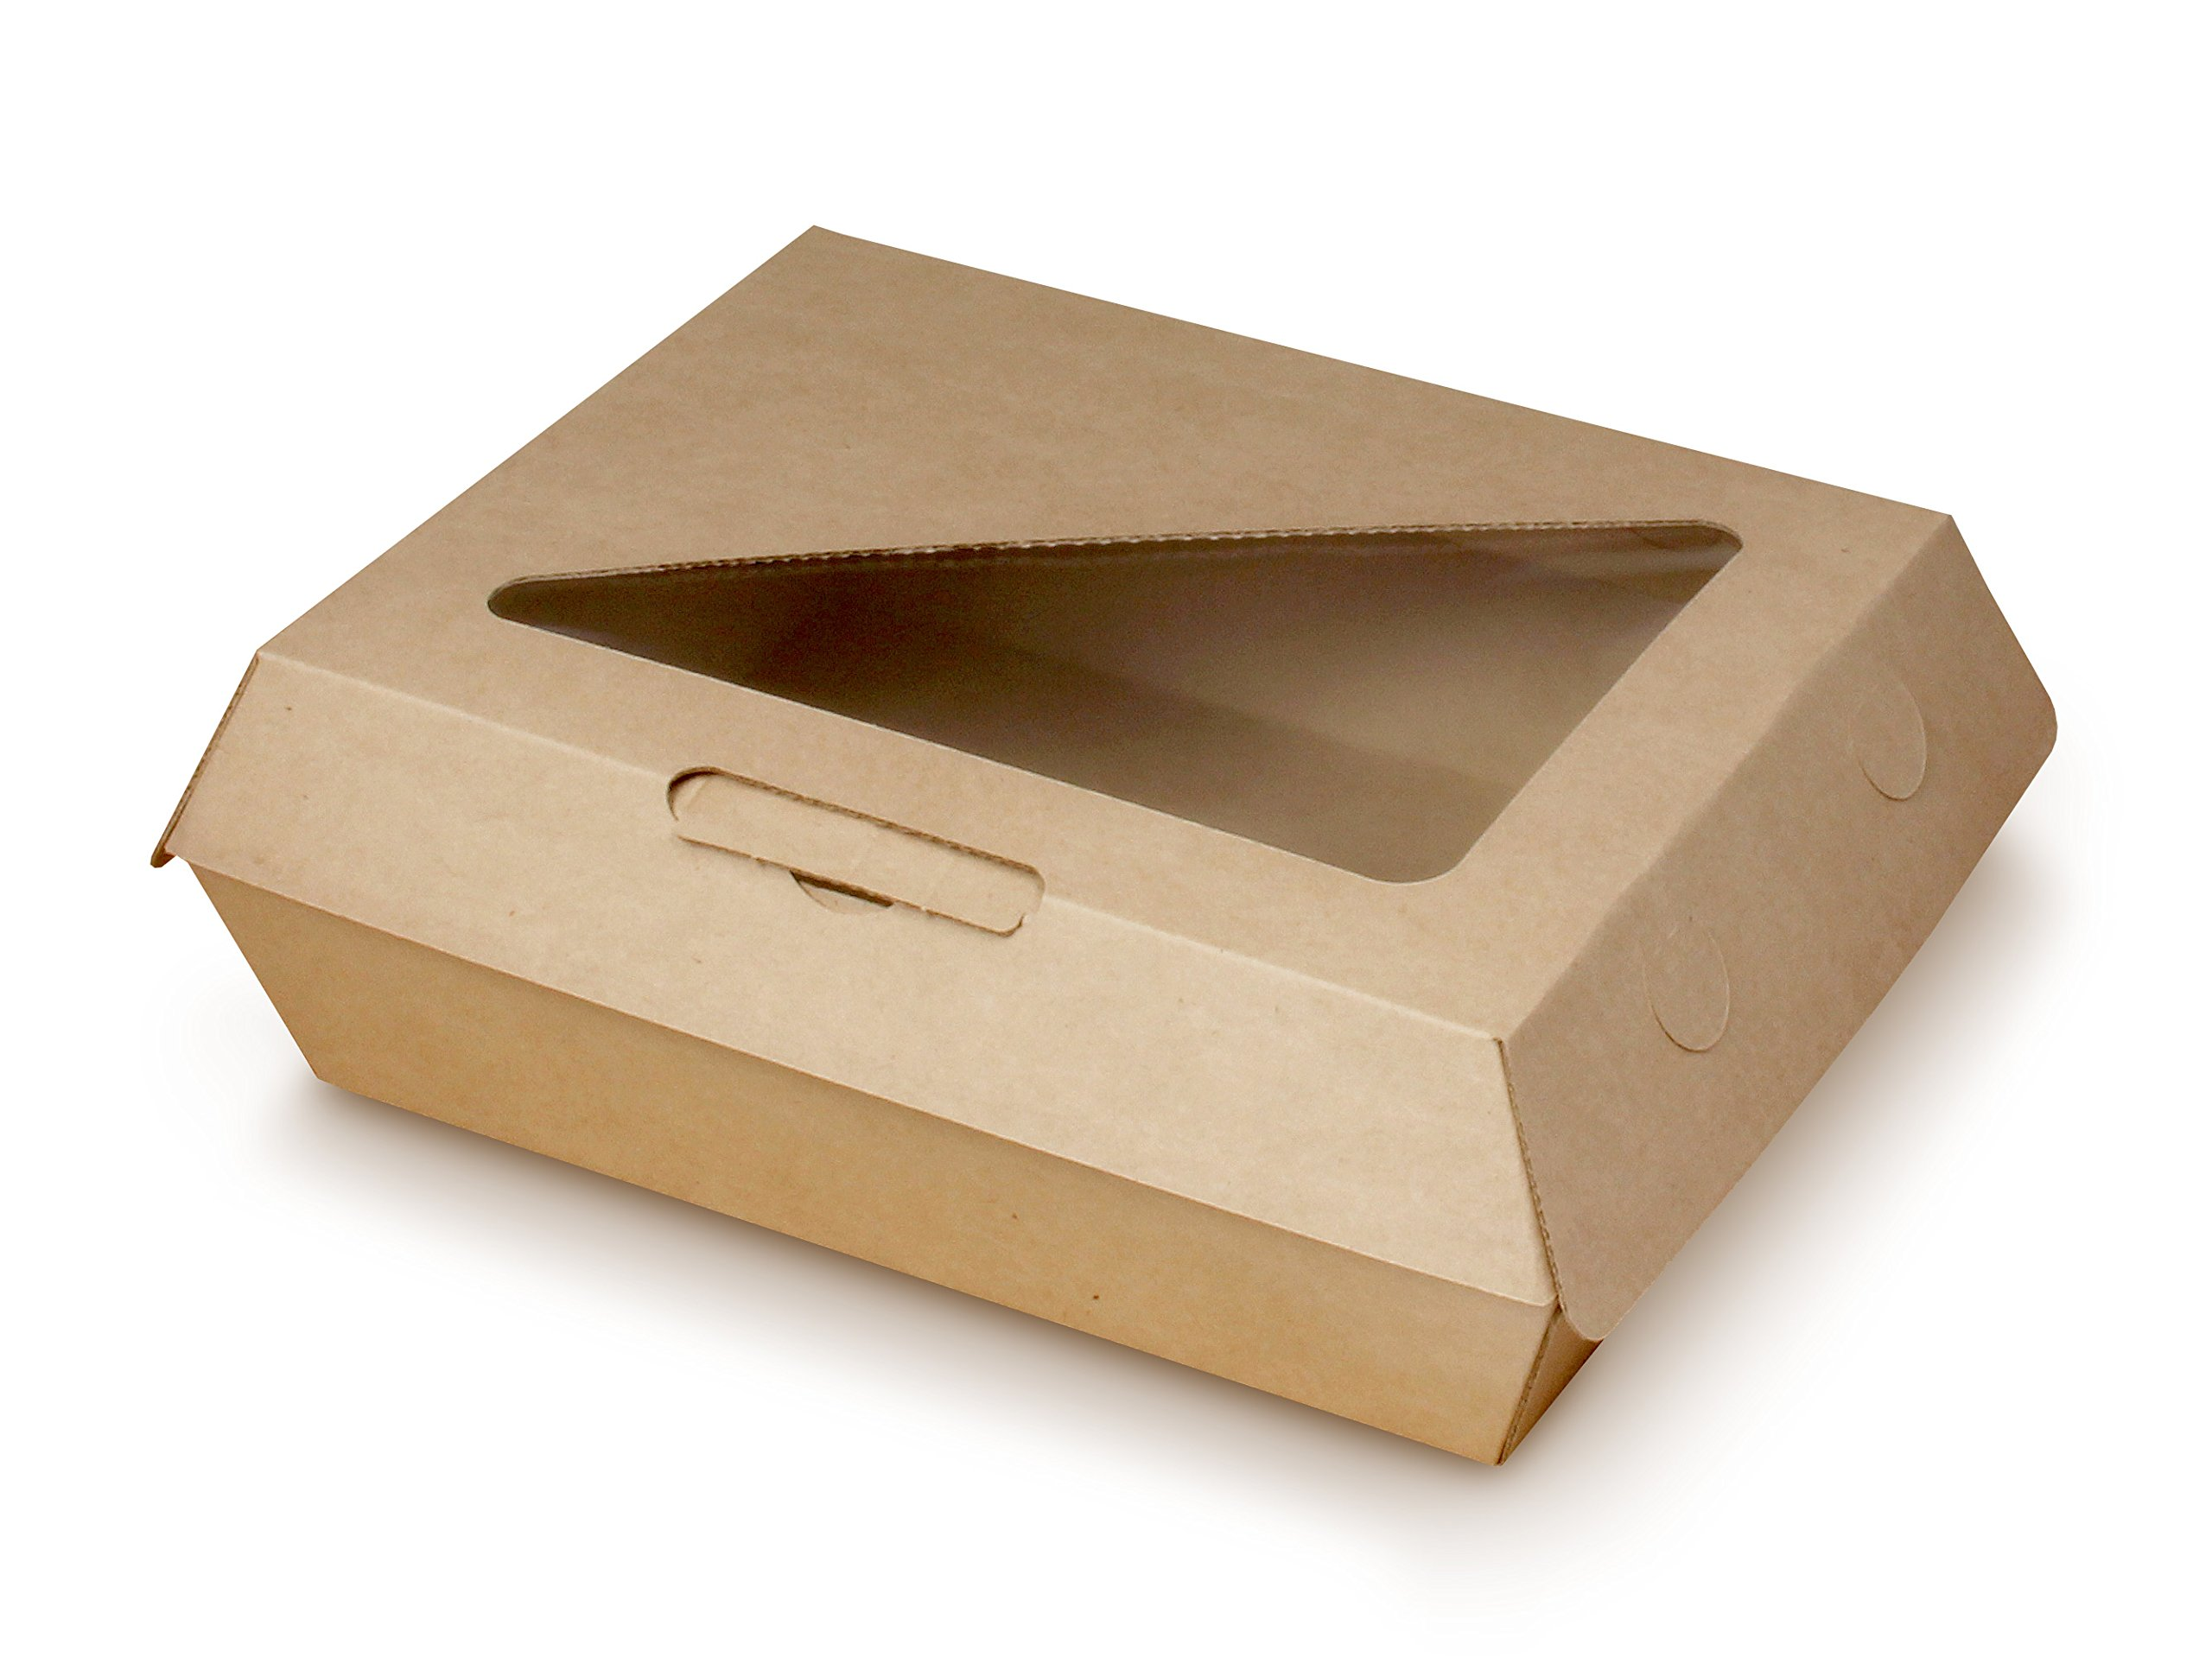 Bagcraft Papercon NAT-F608RAVTWF EcoCraft Eco-Flute ToGo! Insulated Window Container, Paper, Natural (Pack of 200)